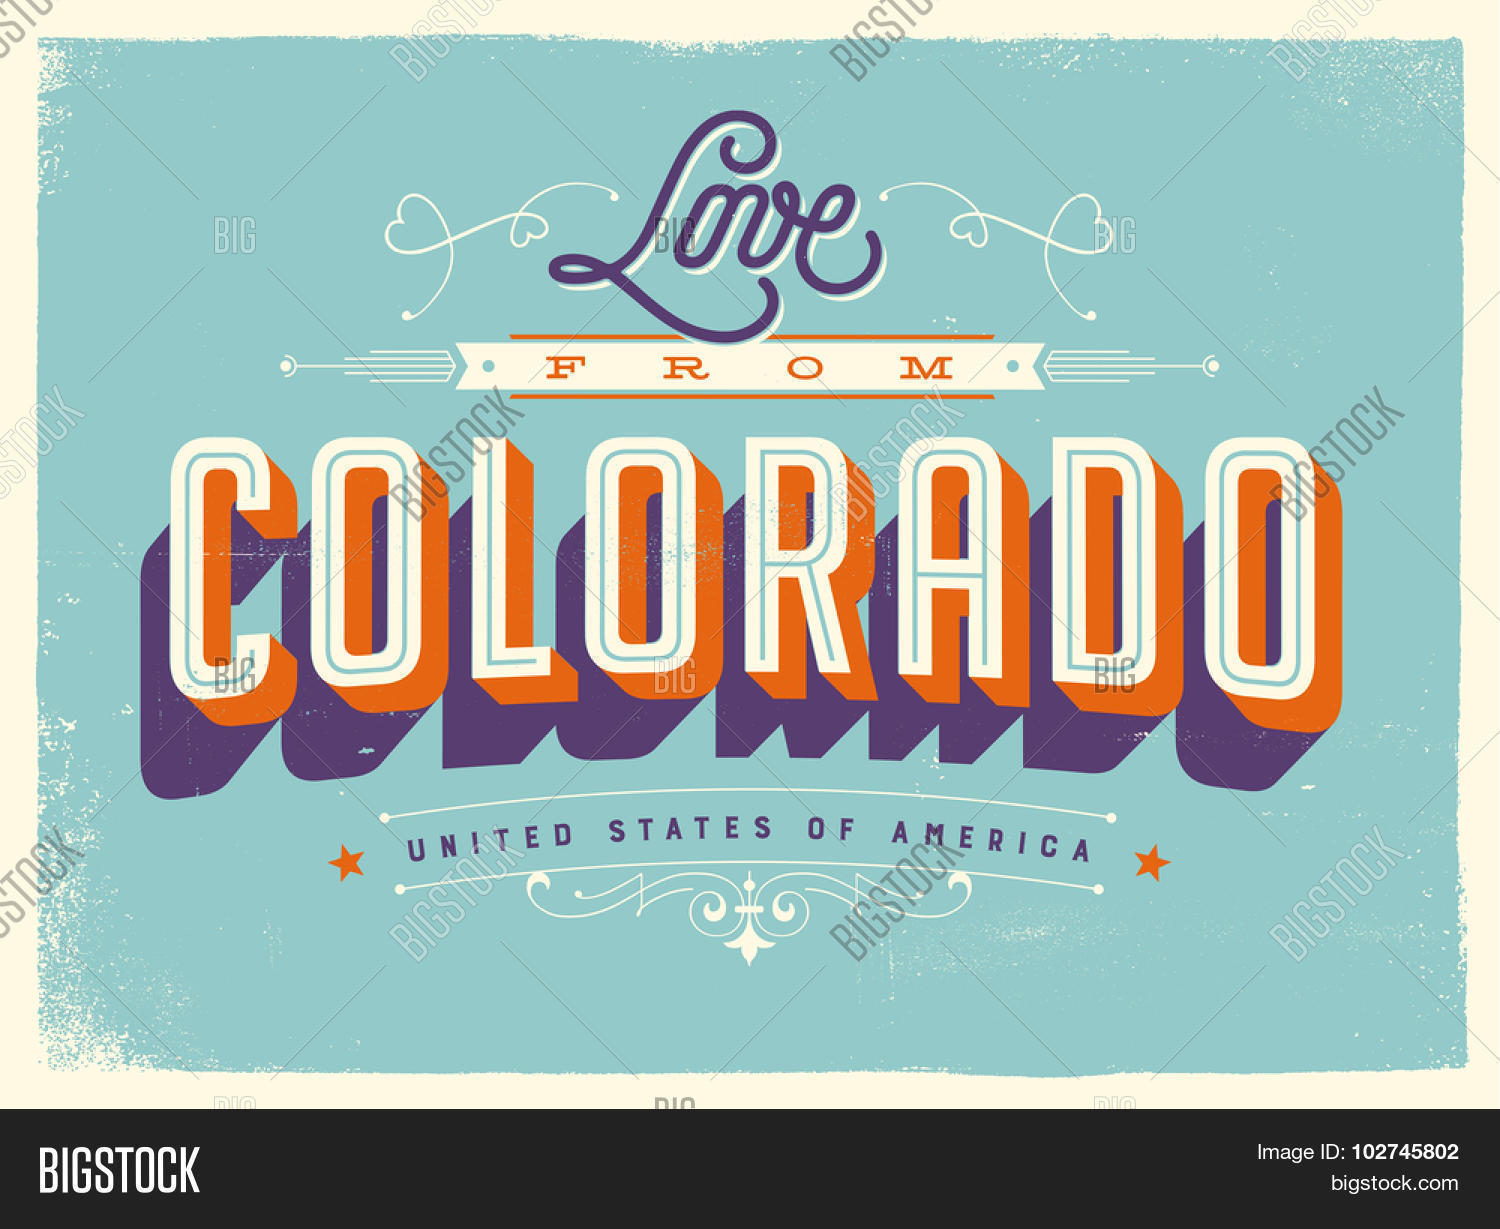 Vintage Style Vector Photo Free Trial Bigstock